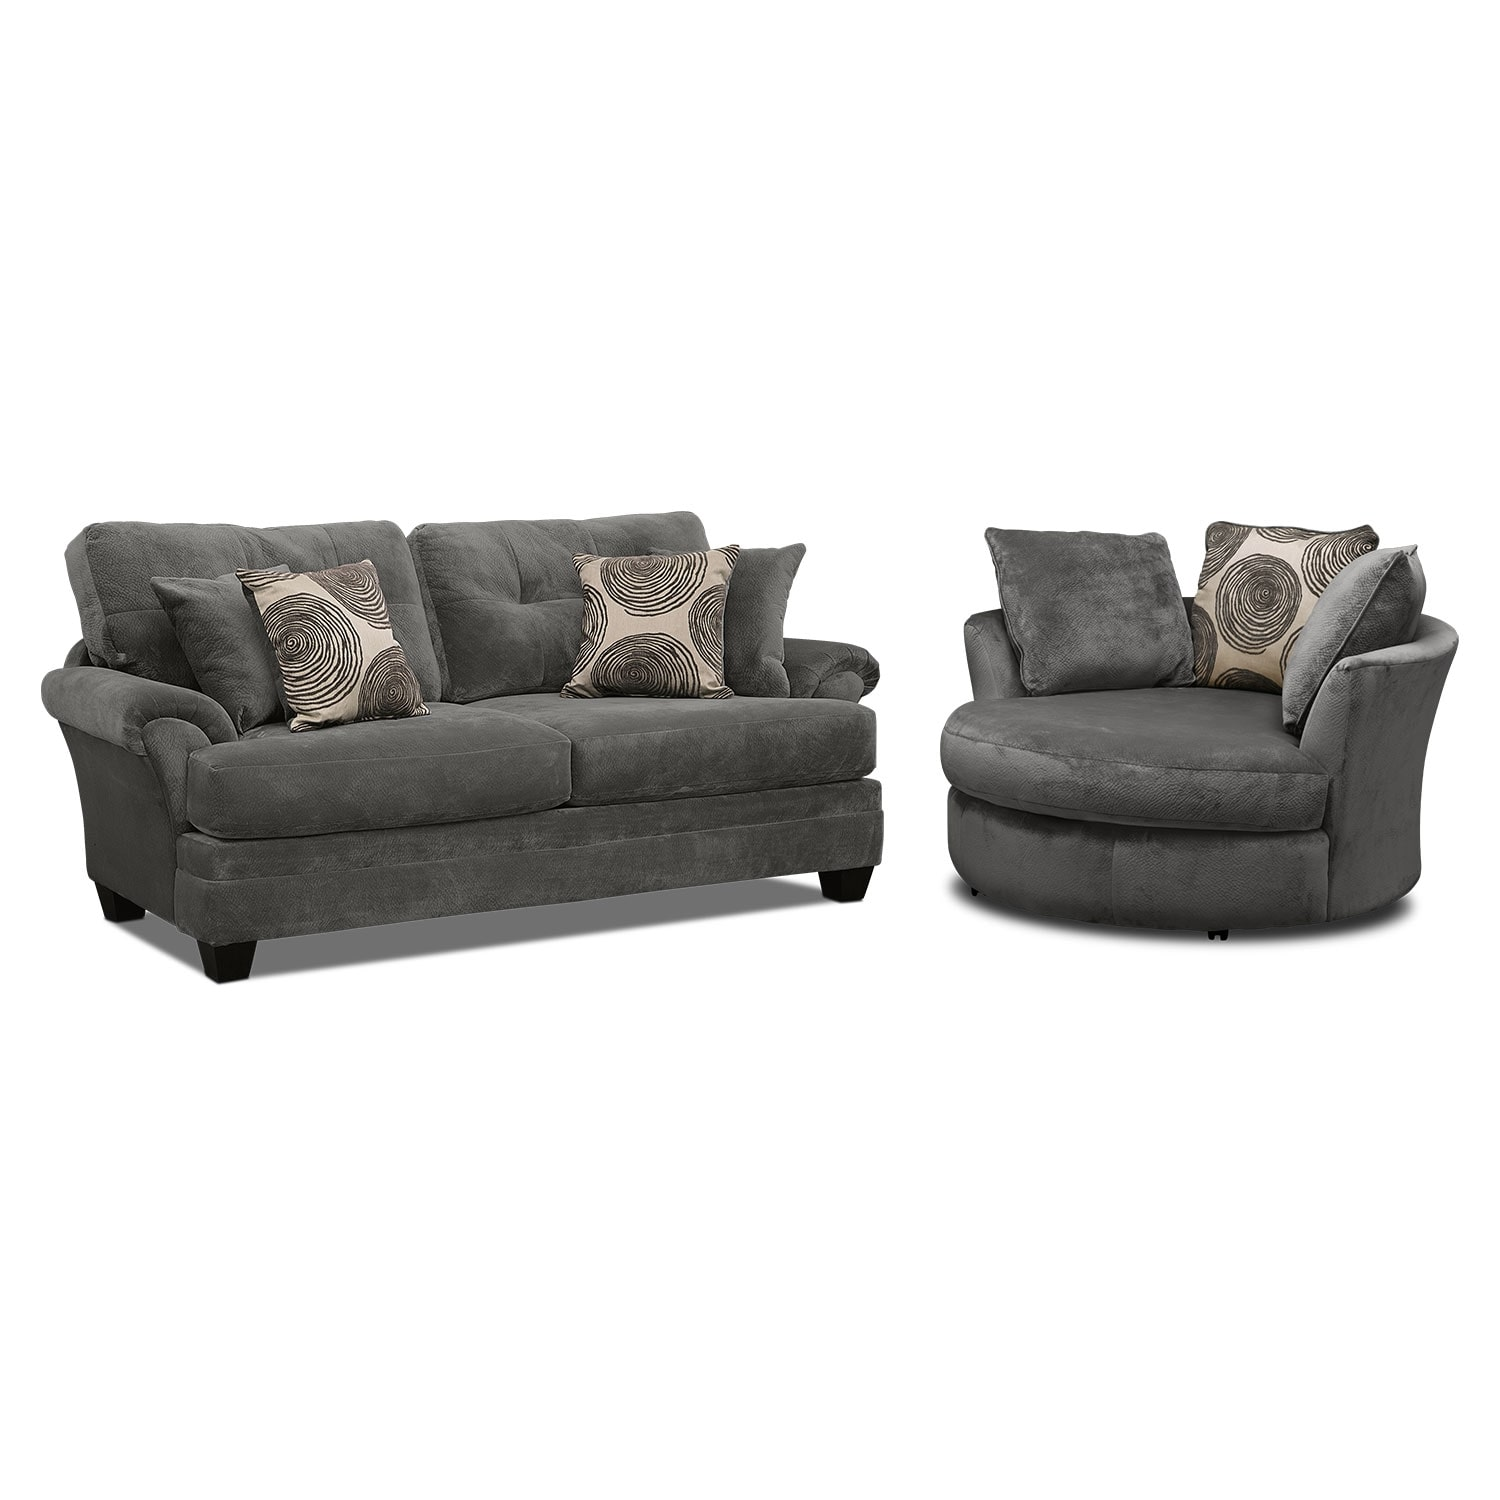 Living Room Furniture   Cordelle Sofa And Swivel Chair Set   Gray